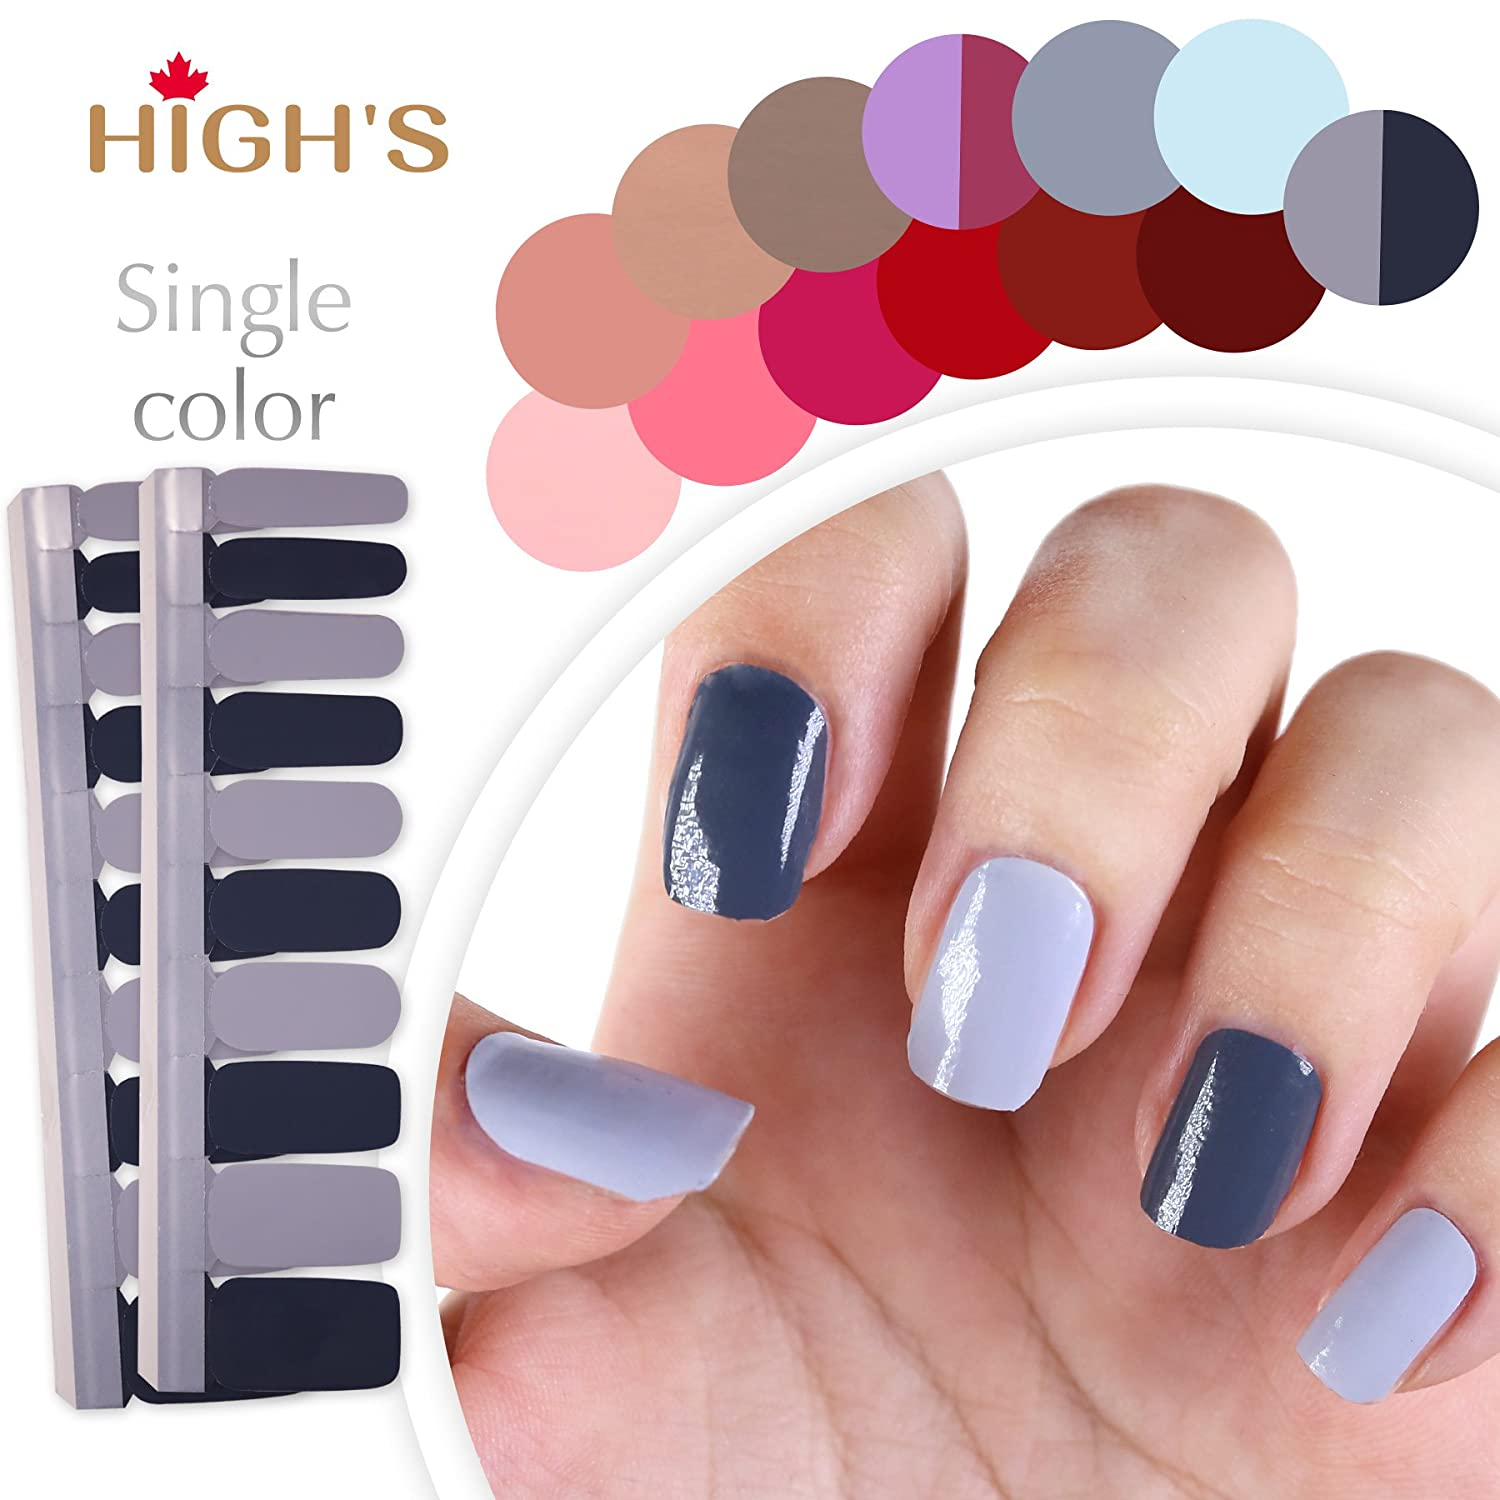 HIGH'S Single Color Series Manicure Nail Polish Strips Nail Wraps, Grey Zone HIGH' S